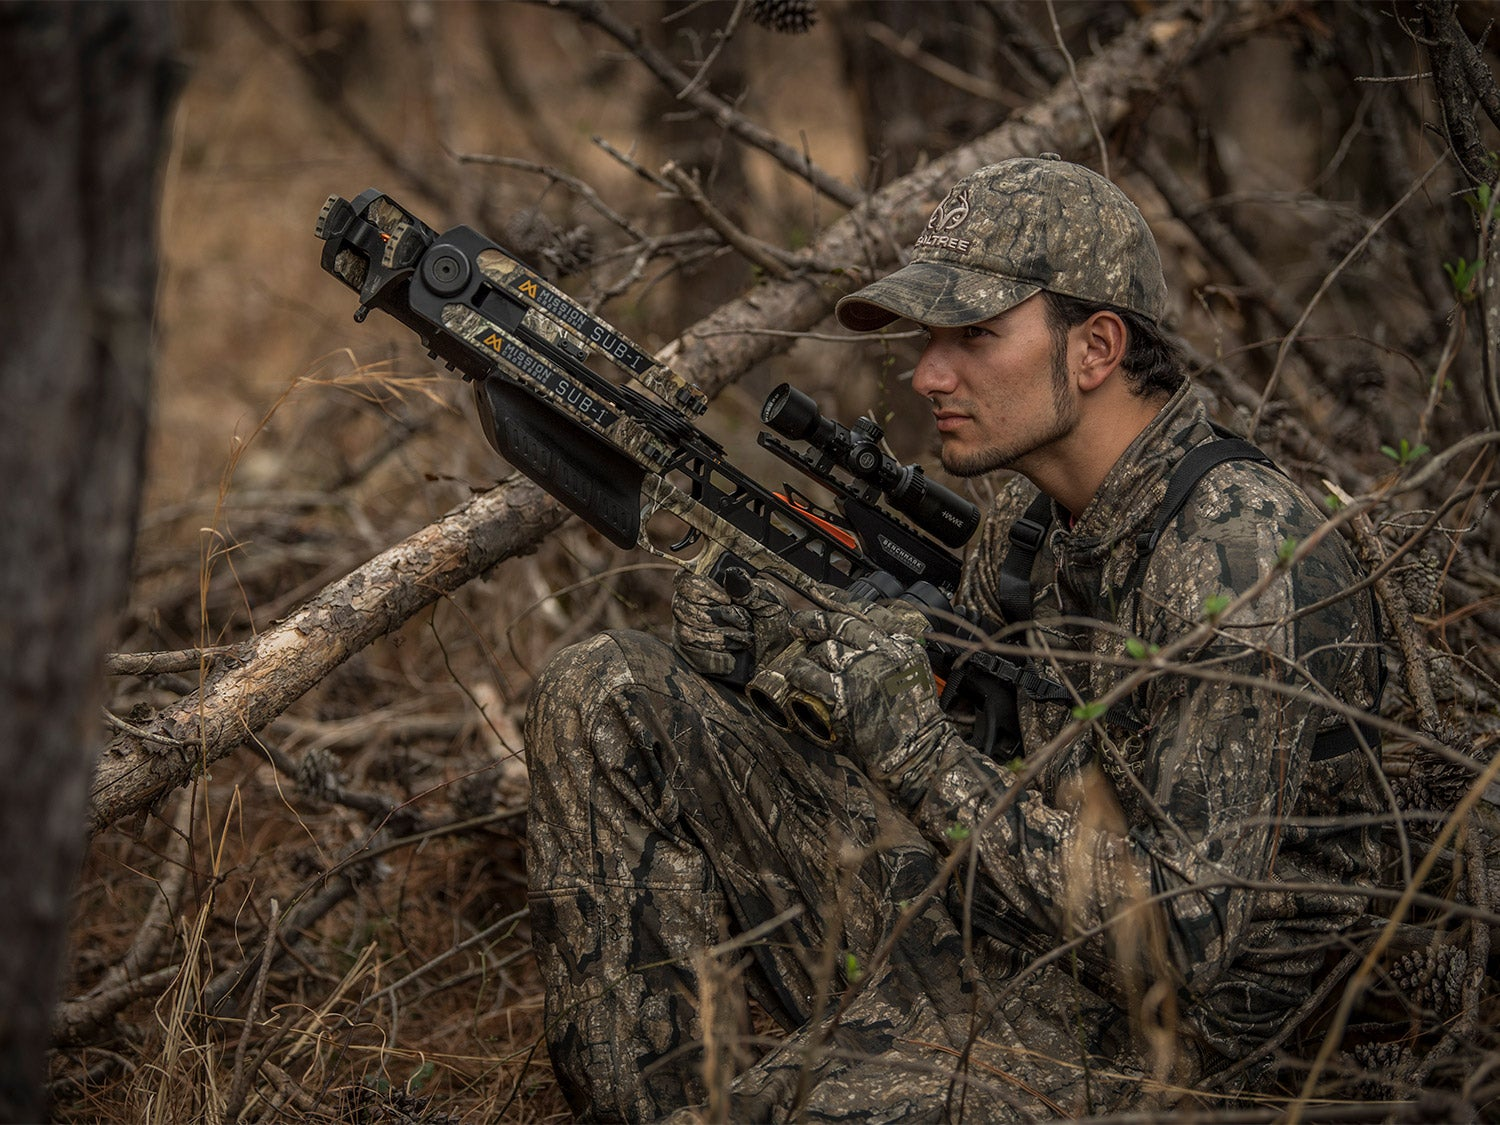 A hunter with a crossbow in a hunting blind.